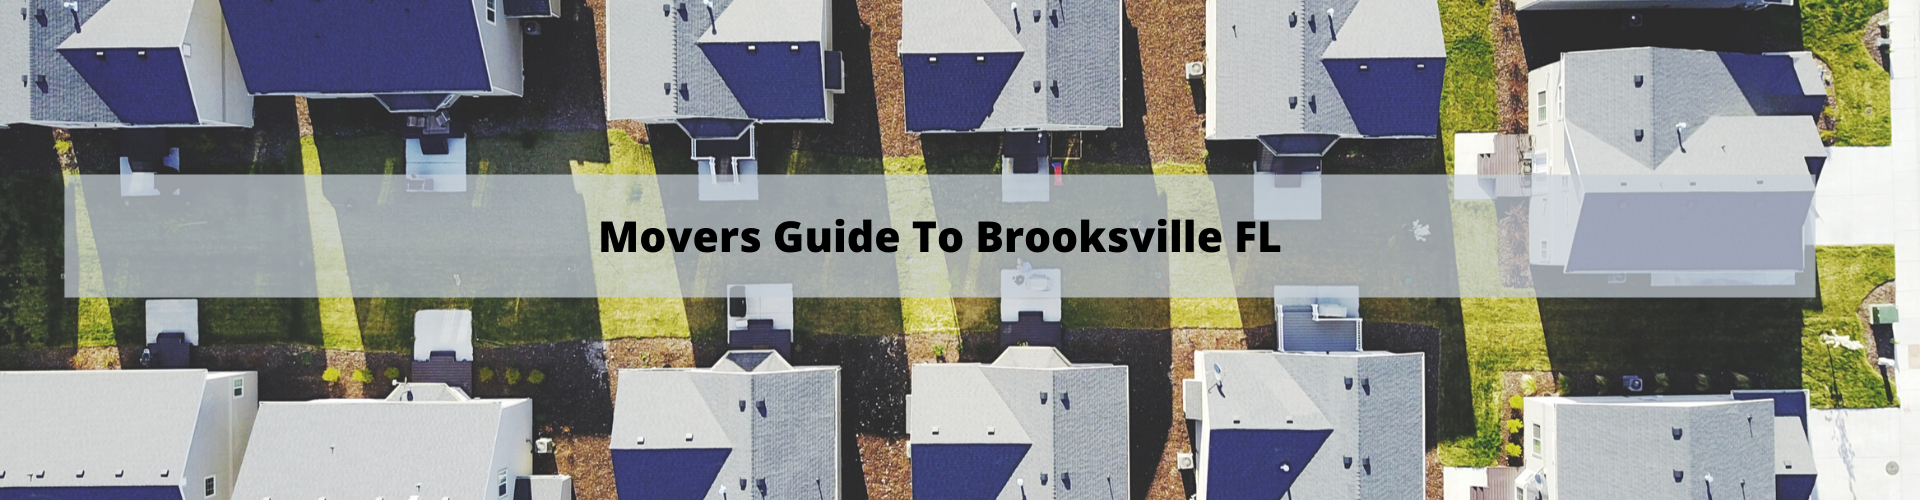 Movers Guide To Brooksville FL